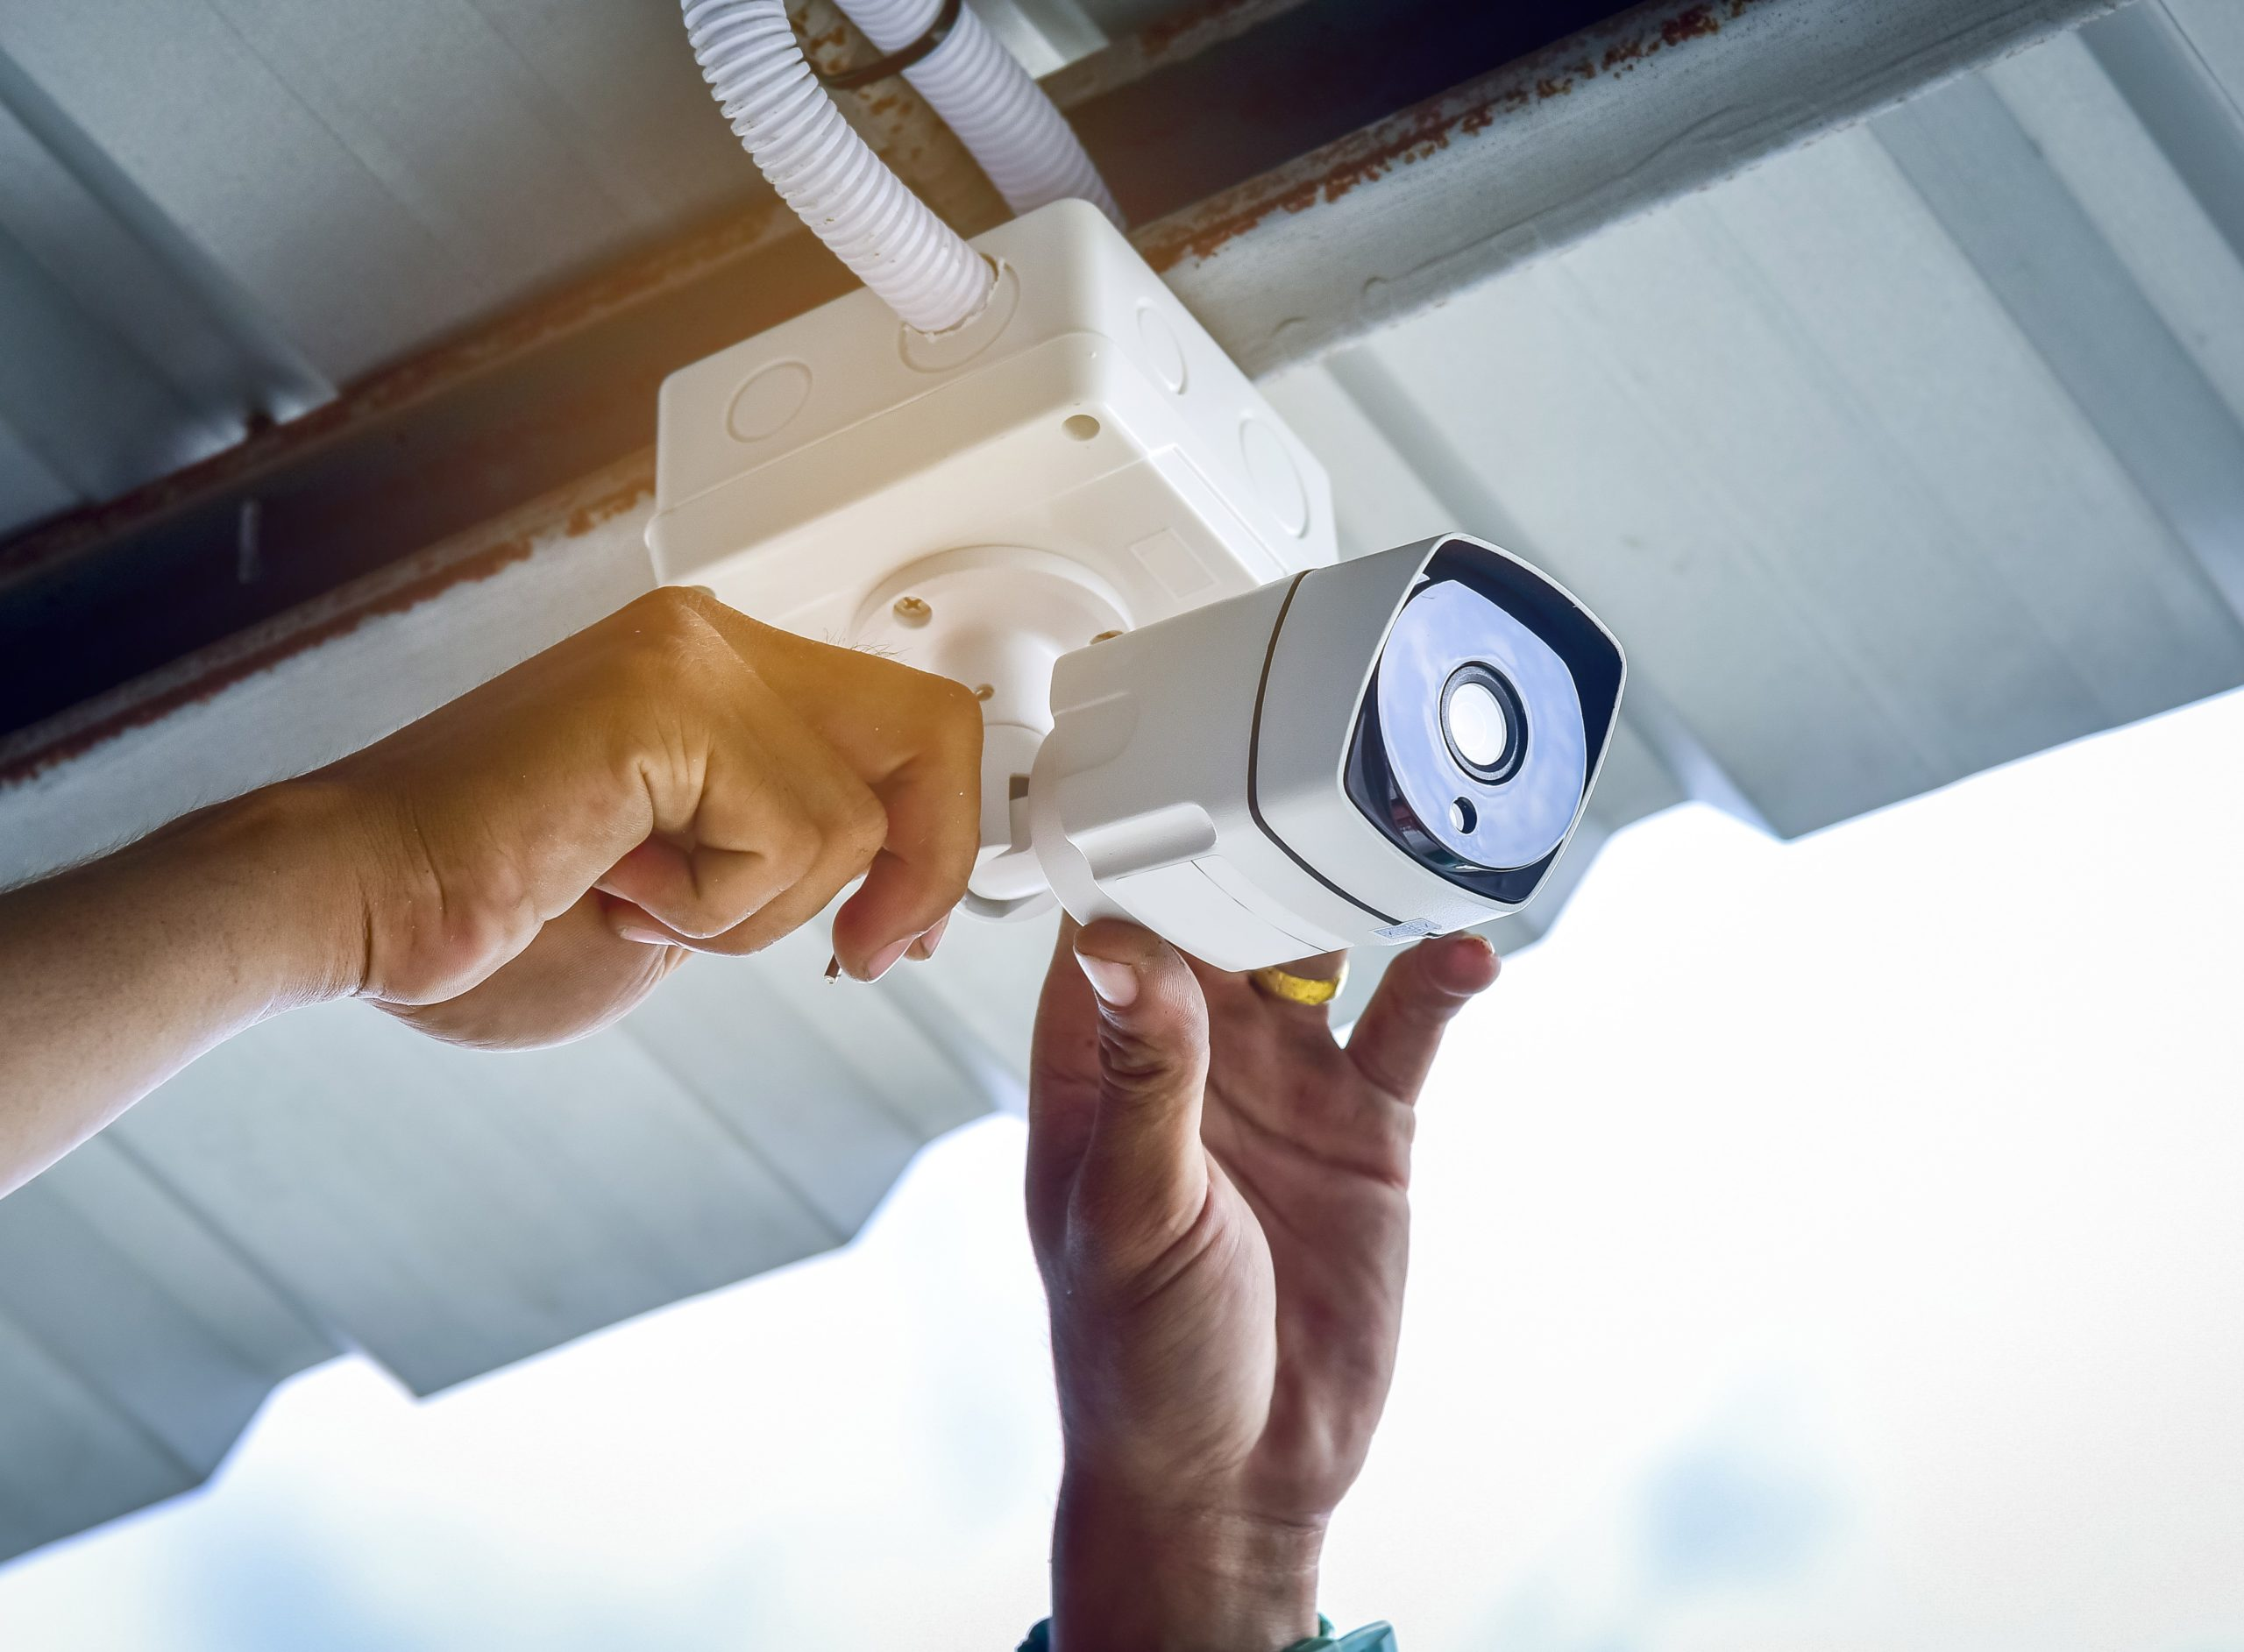 It is important to use up to date security systems